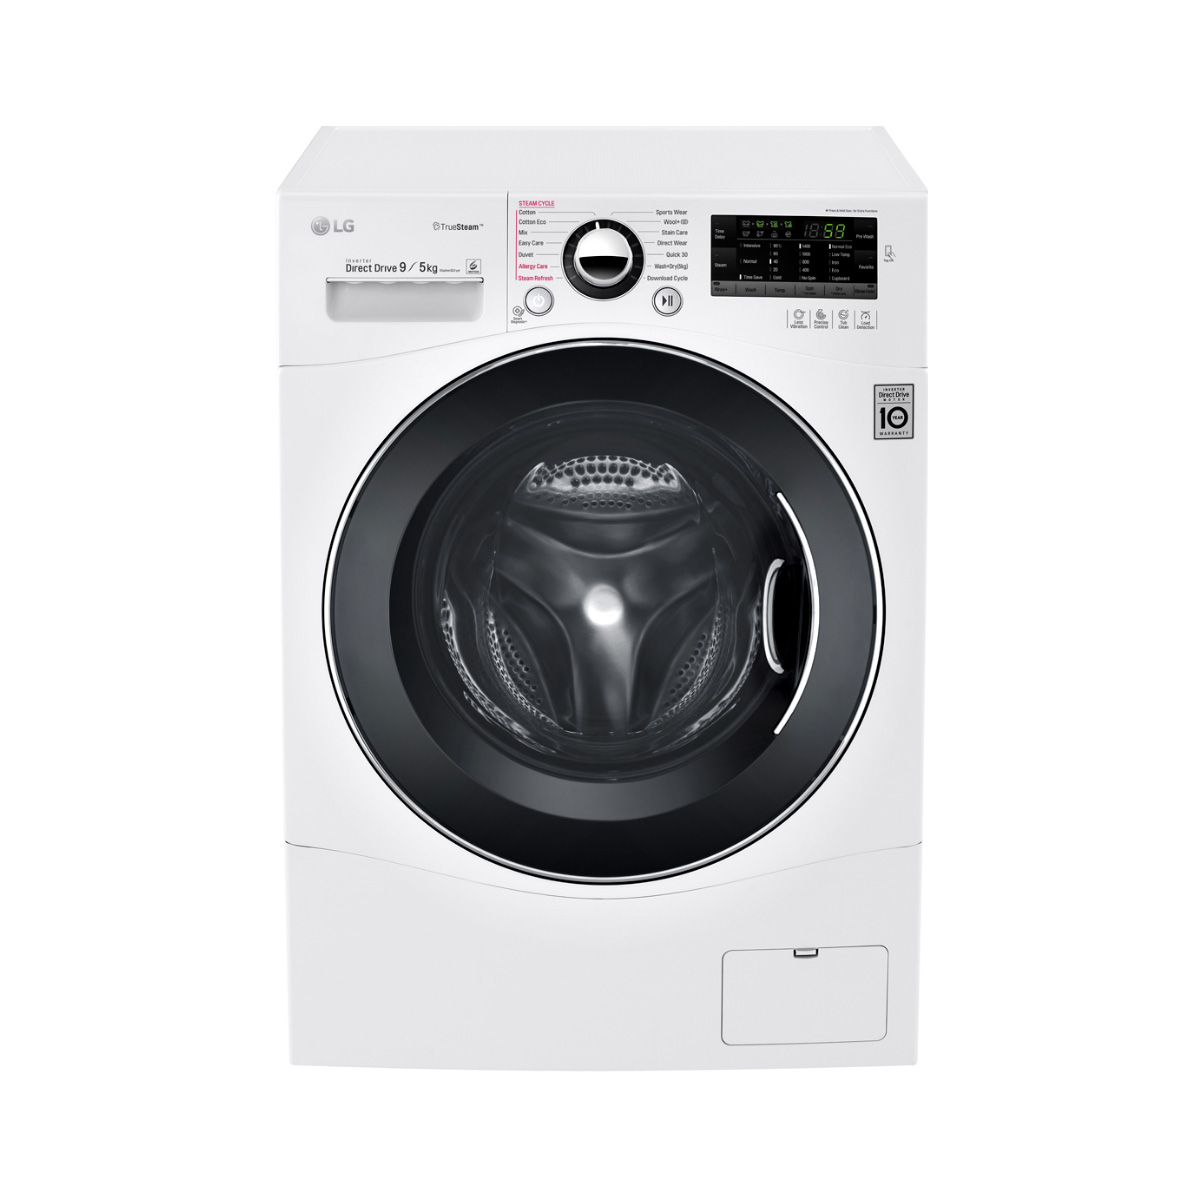 LG Washer Dryer Combo WD1409HPW